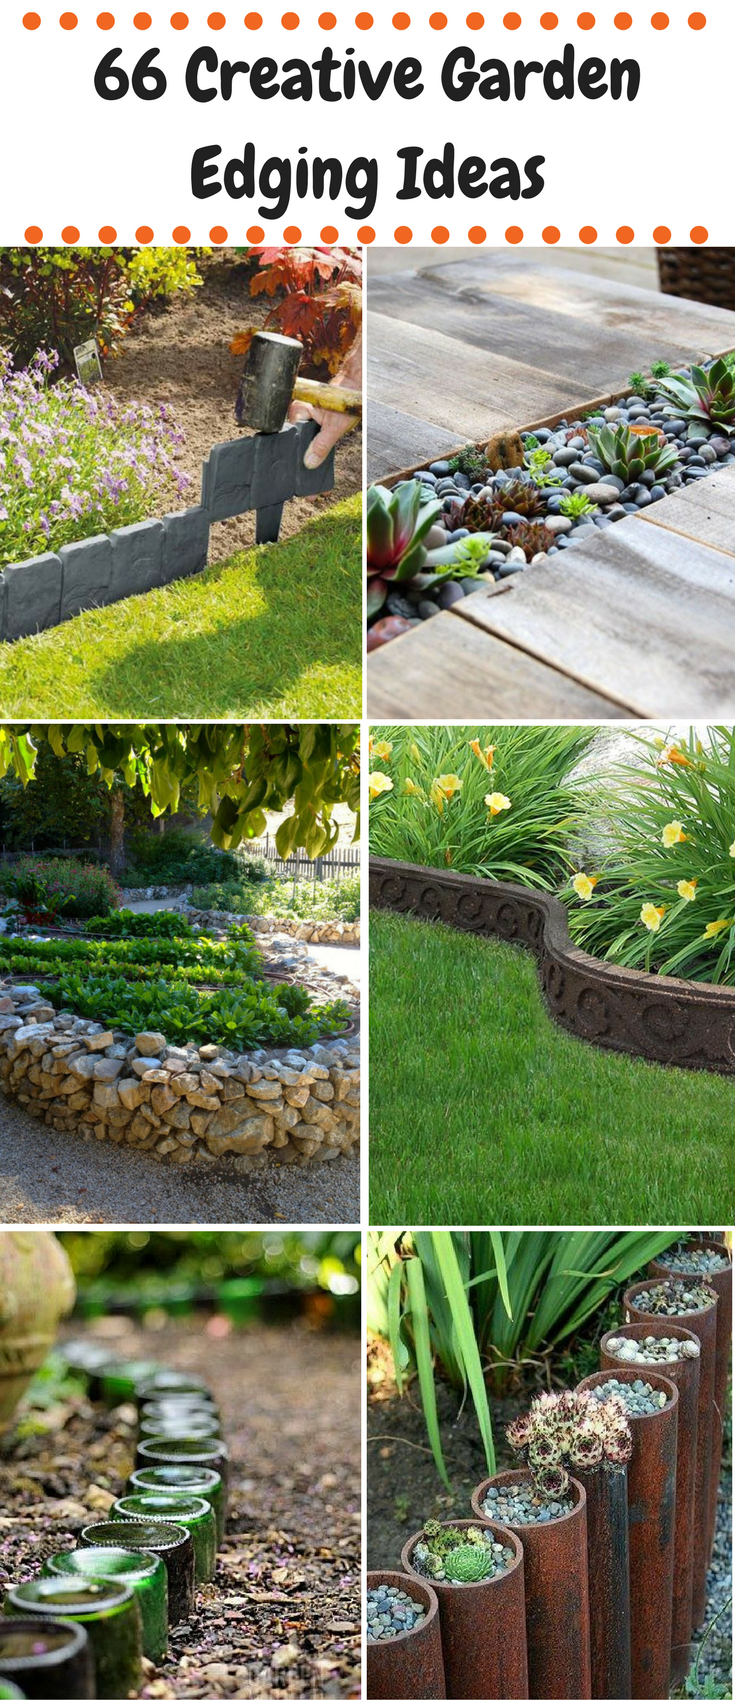 66 creative garden edging ideas gardens creative and